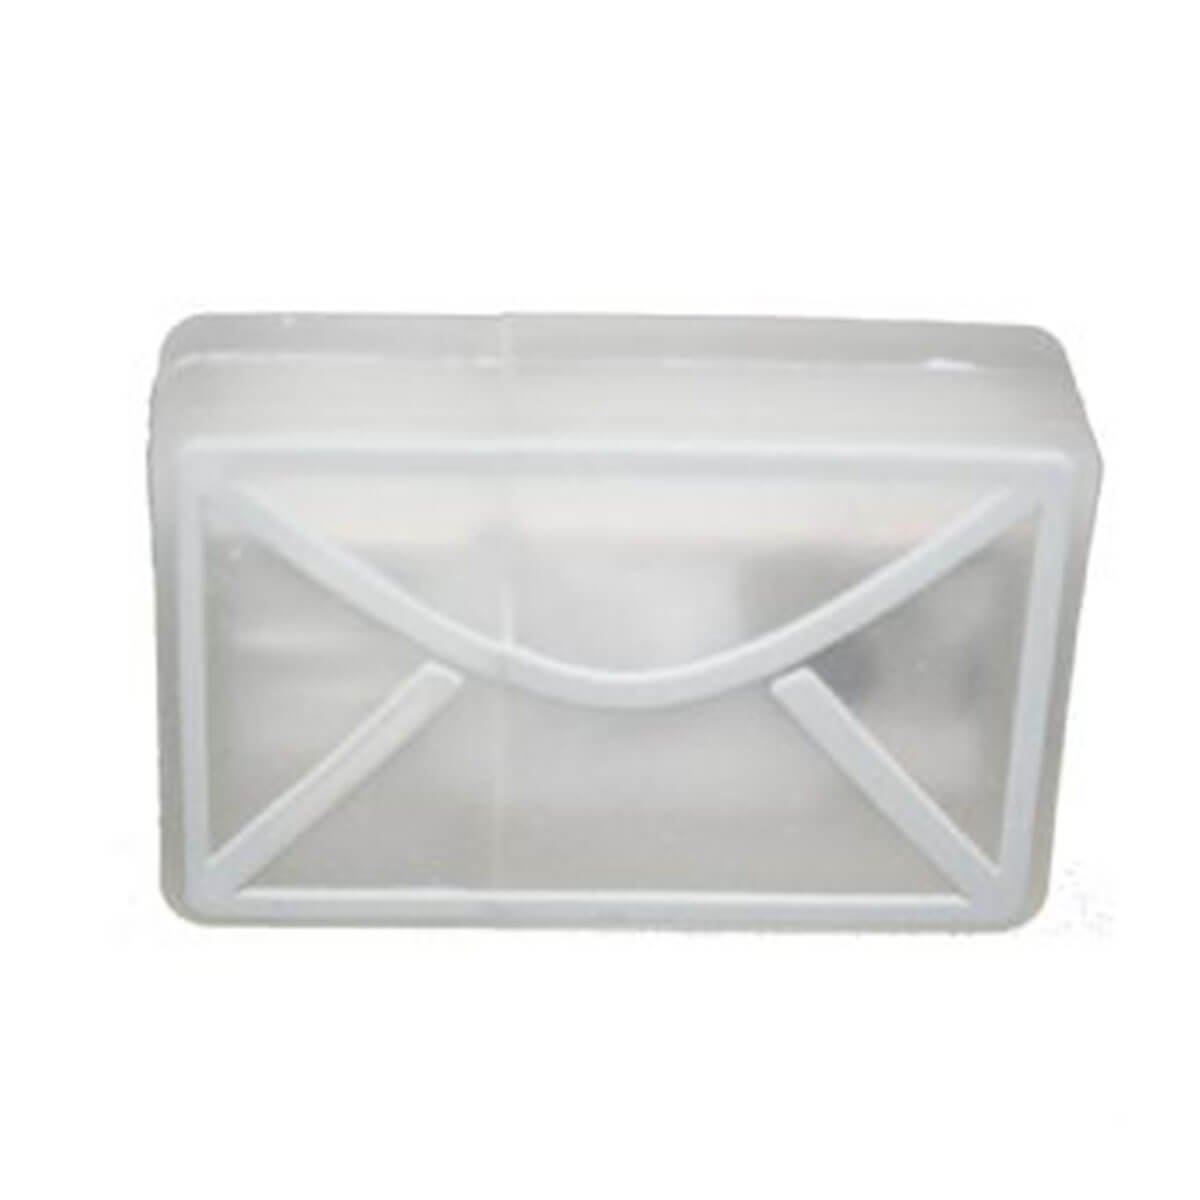 Envelope (with LED) PVC Flash Drive-You can change up to 2 of the base PVC colours and print your logo in 1-2 colours in 1 position.